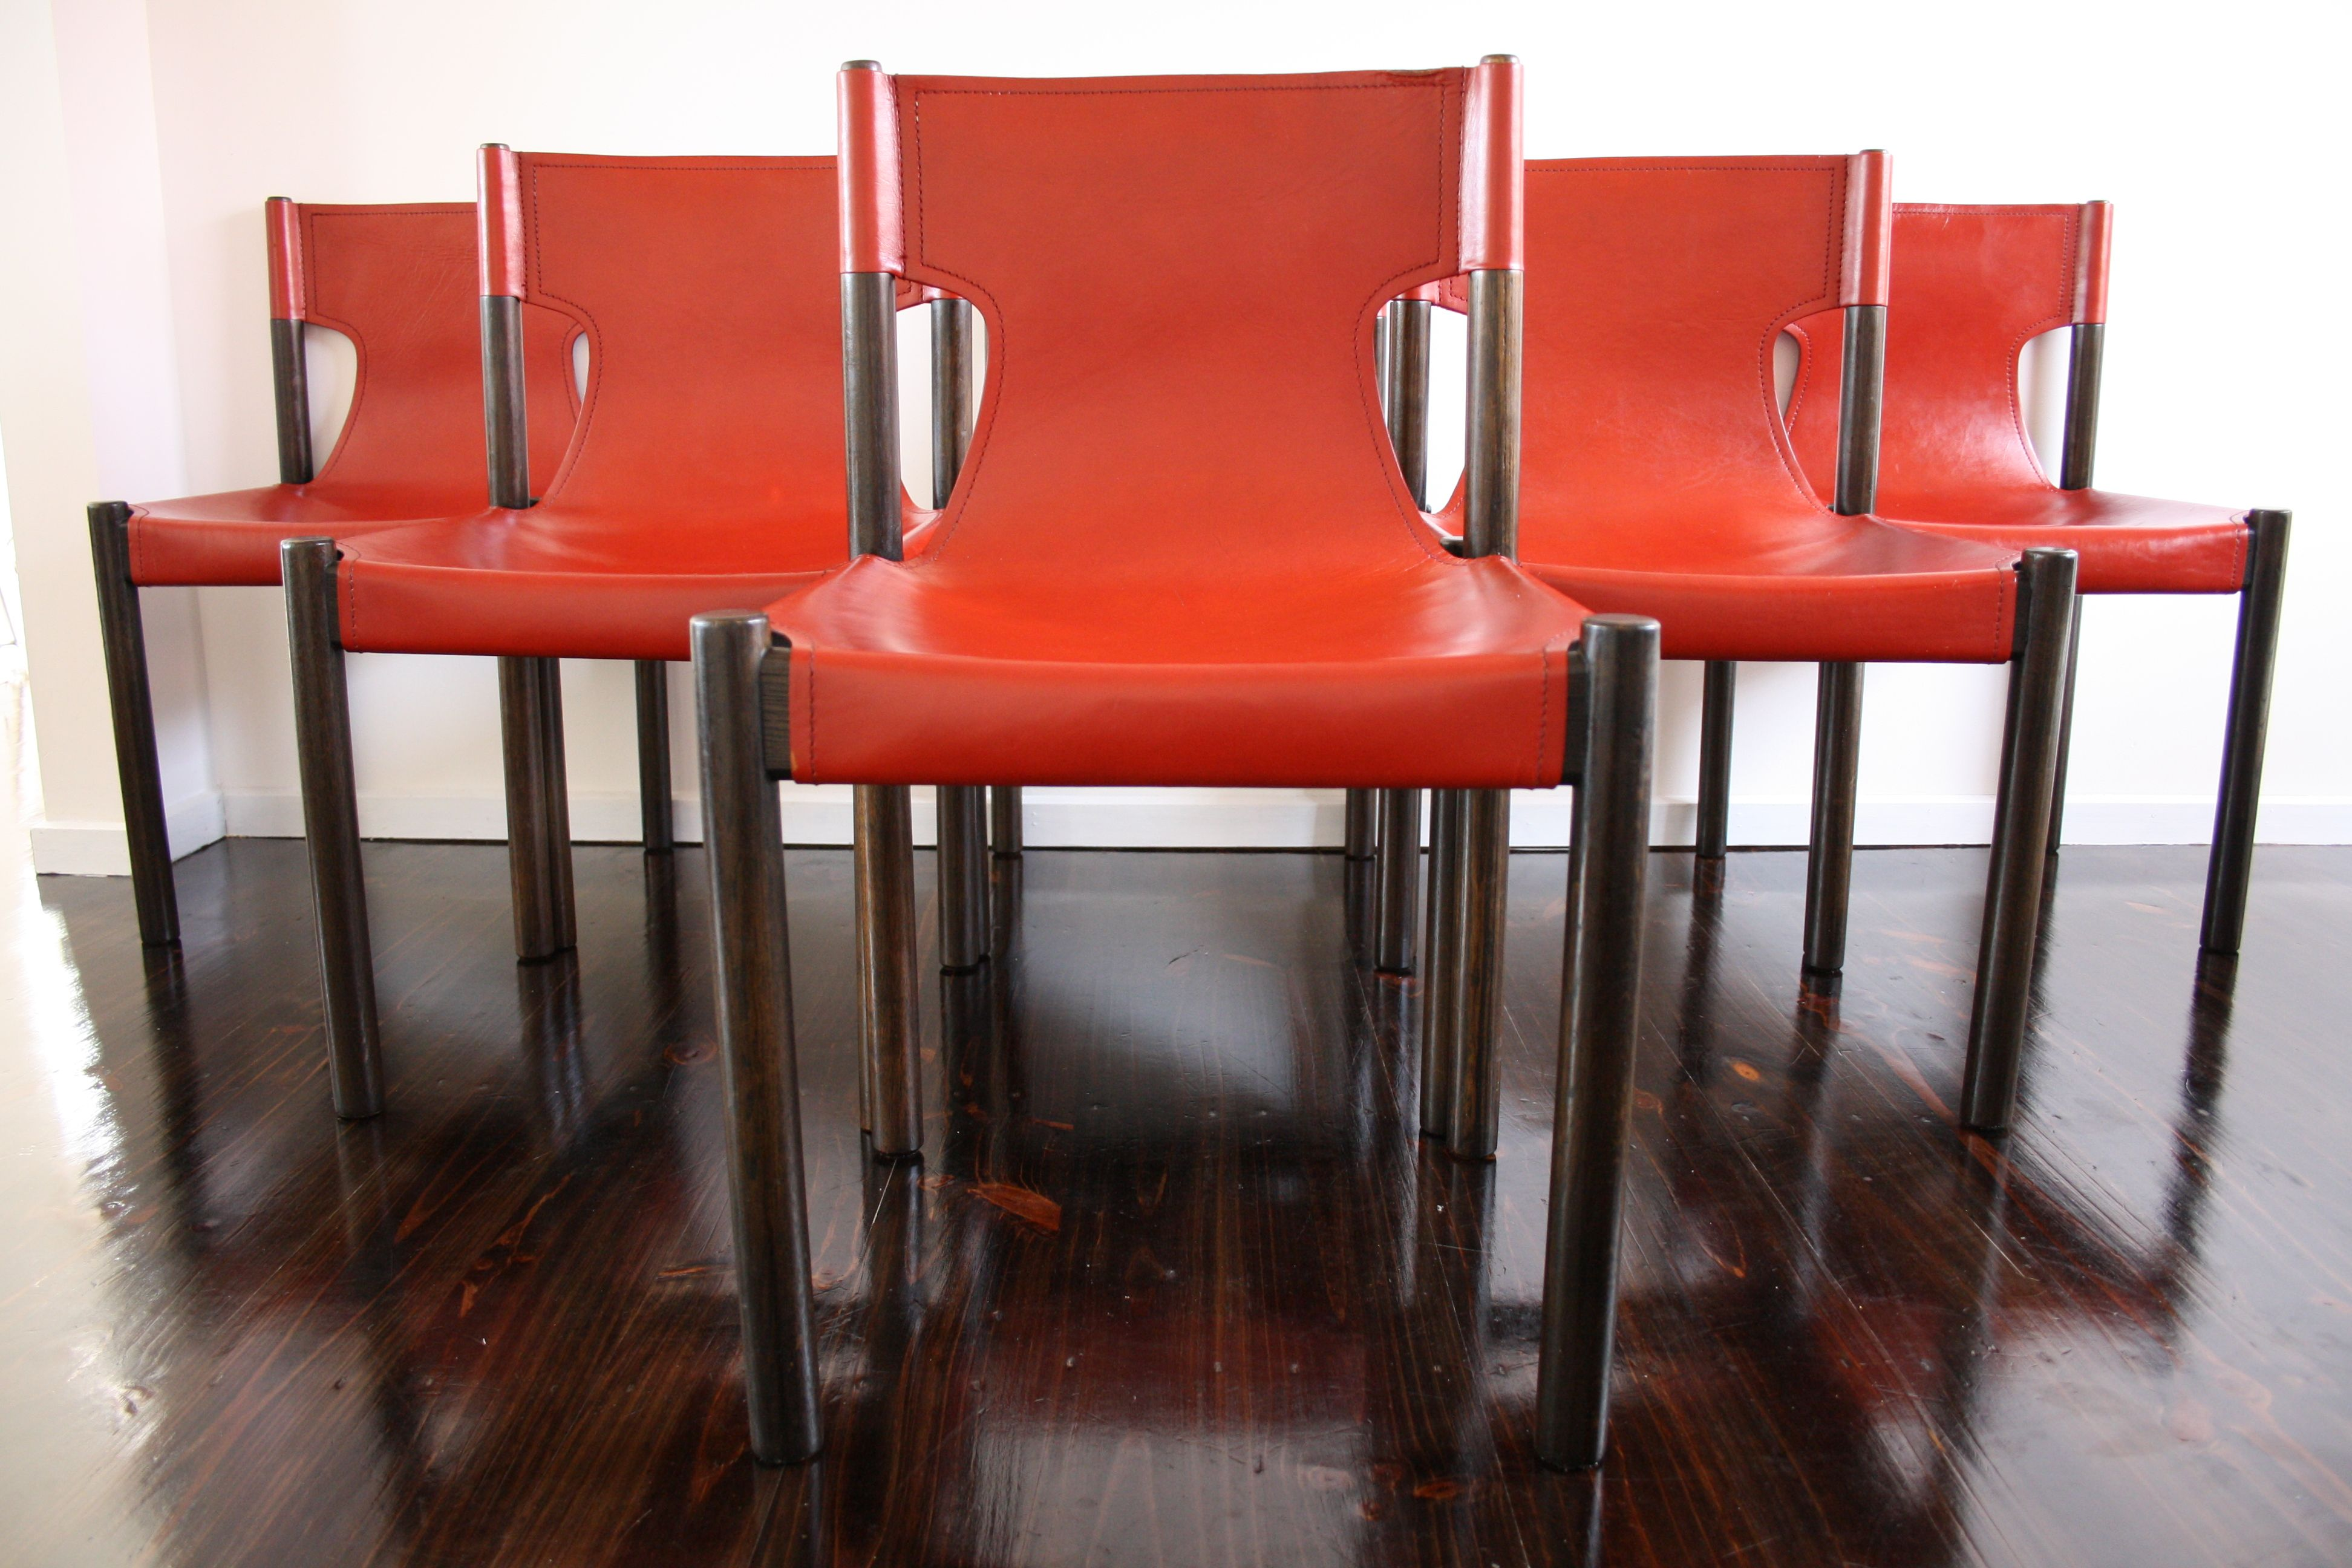 Terrific Fler Mid Century Red Leather Slingback Dining Chairs Retro Dailytribune Chair Design For Home Dailytribuneorg